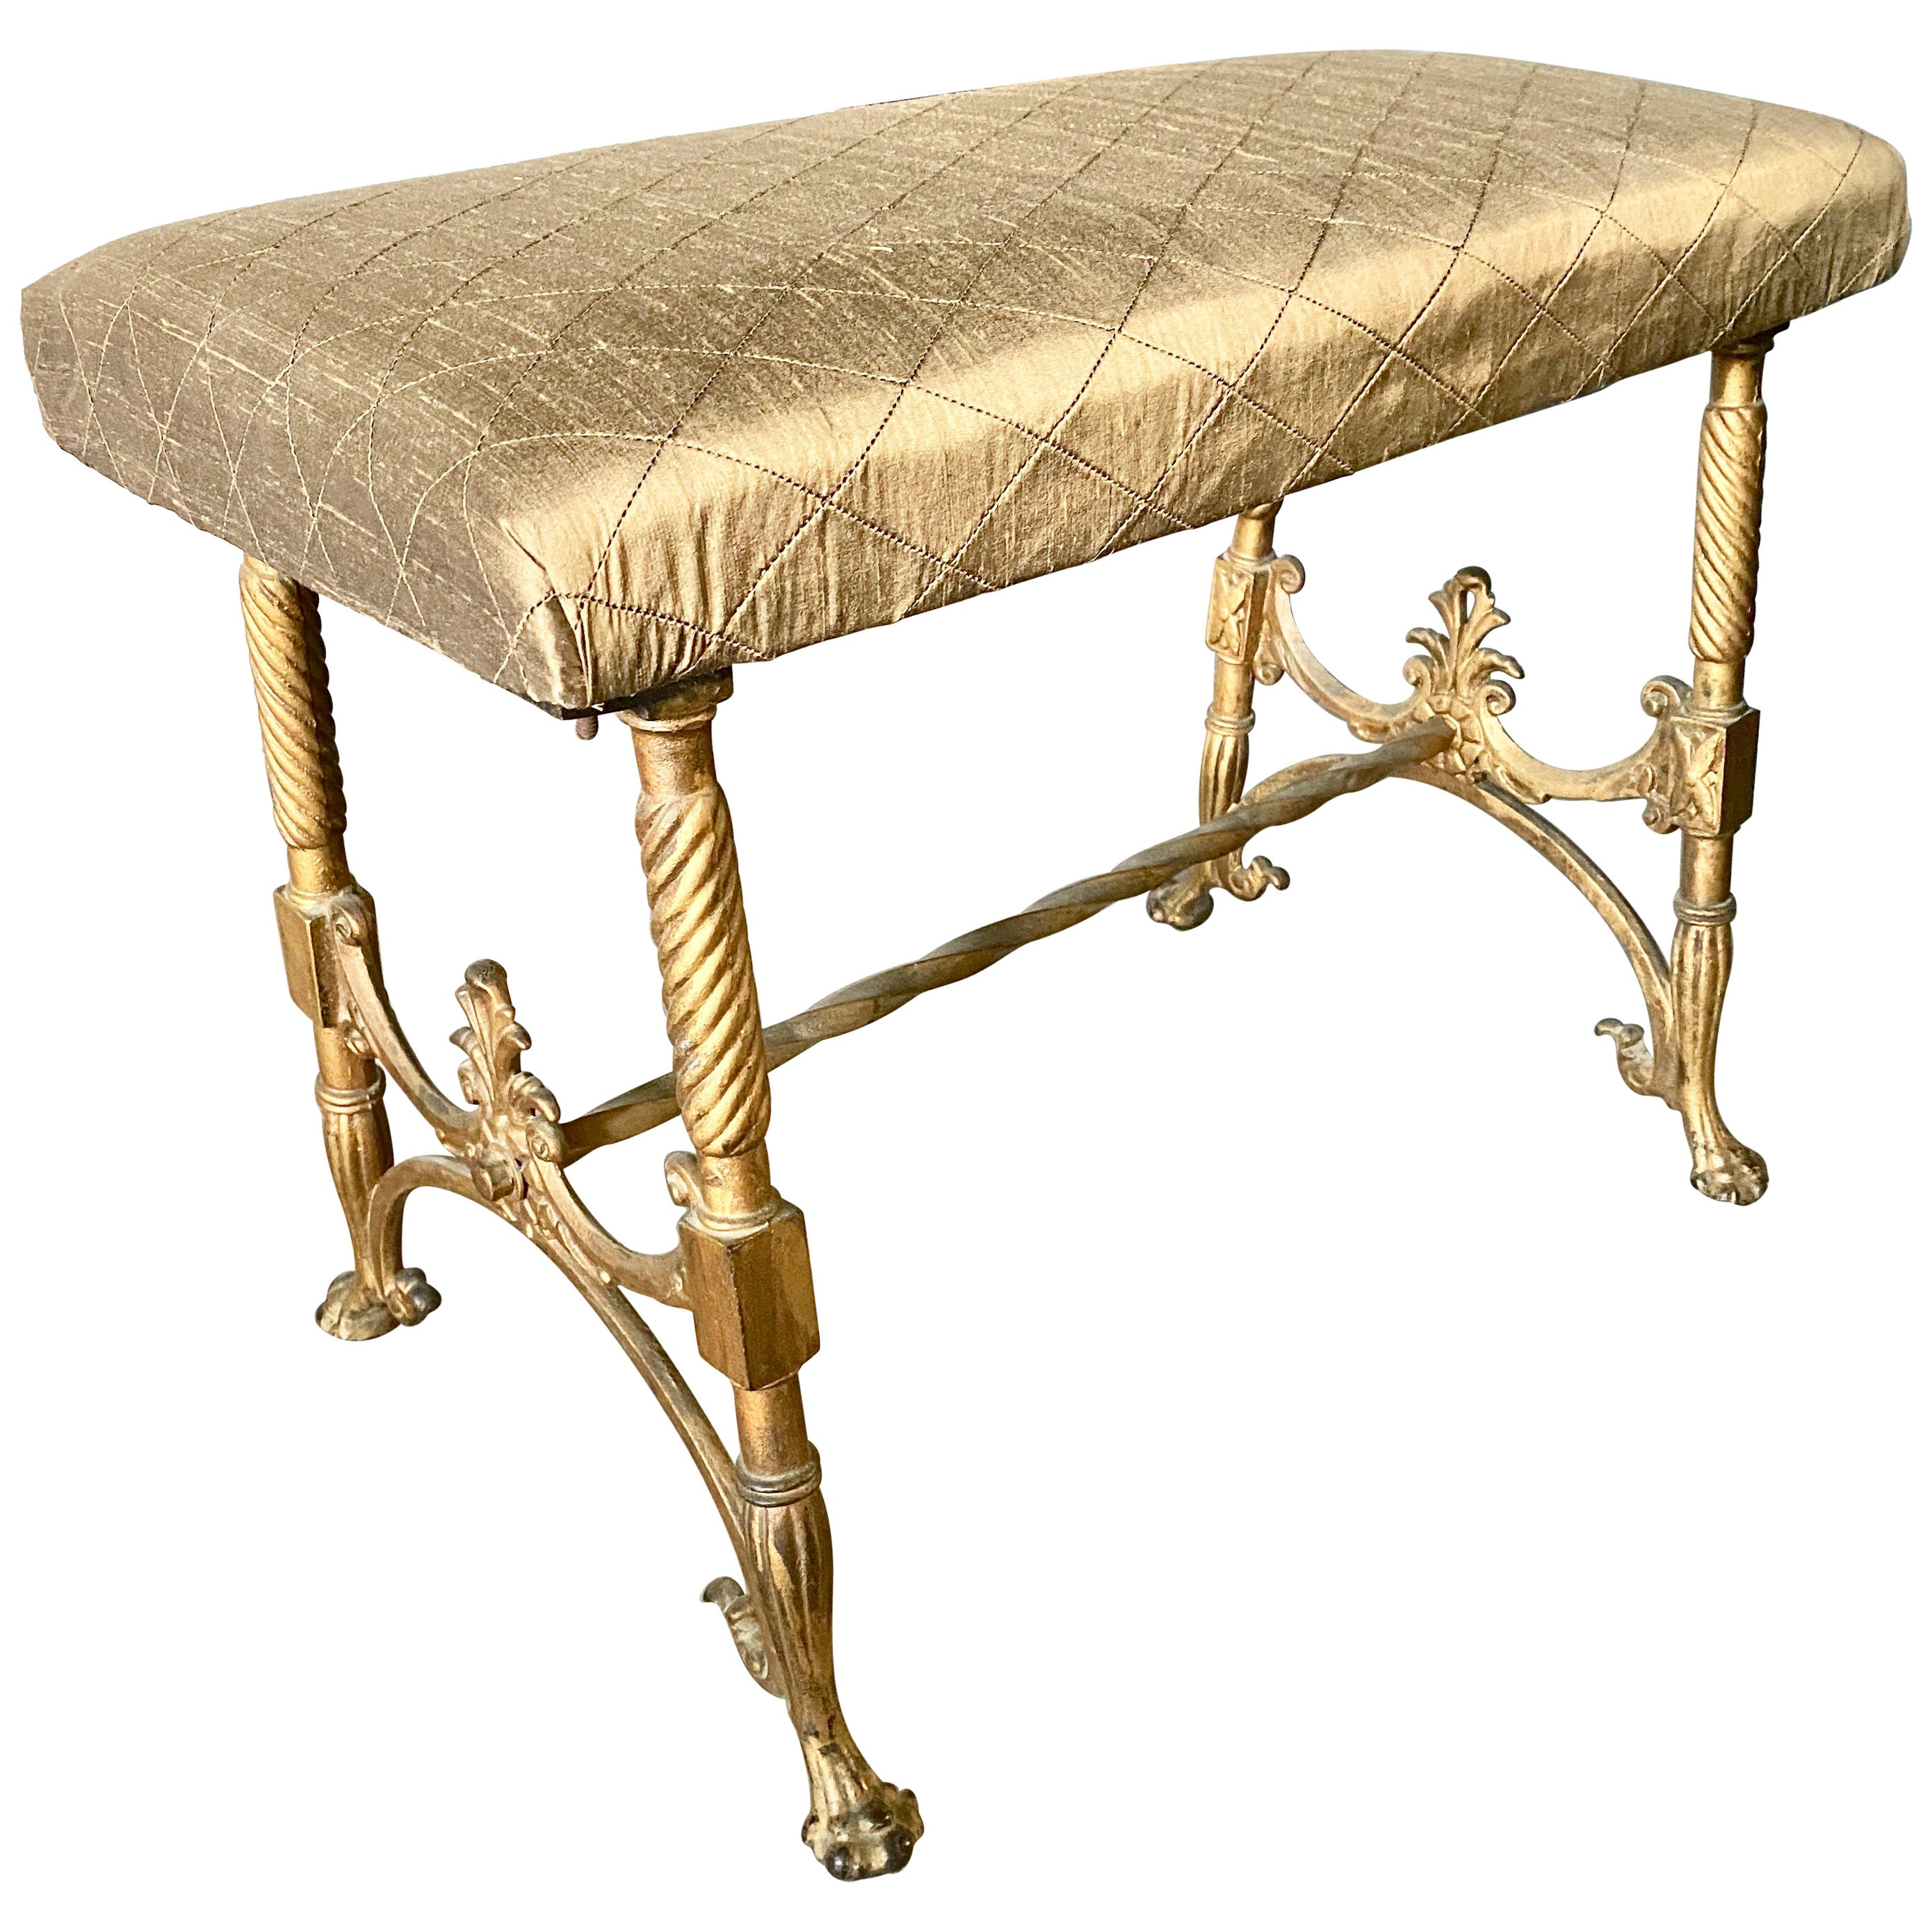 Picture of: Vanity Benches 8 For Sale On 1stdibs